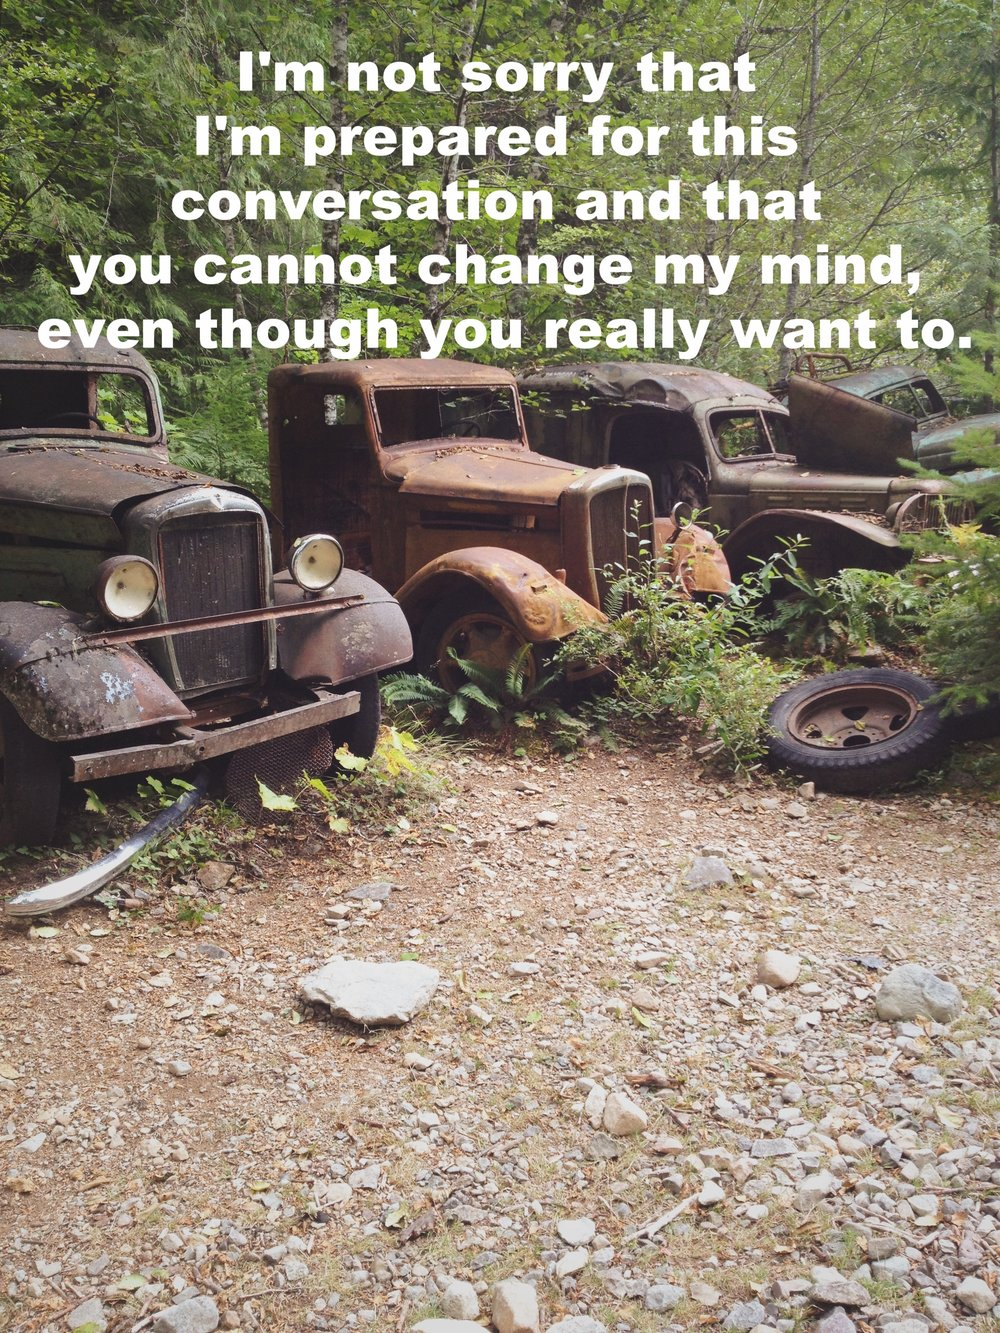 "Anonymous January 7 2017 Image of old rusting cars and trucks against forest trees and overgrowth. Stones and gravel foreground the picture. ""I'm not sorry that I'm prepared for this conversation and that you cannot change my mind, even though you really want to"" is overlaid."